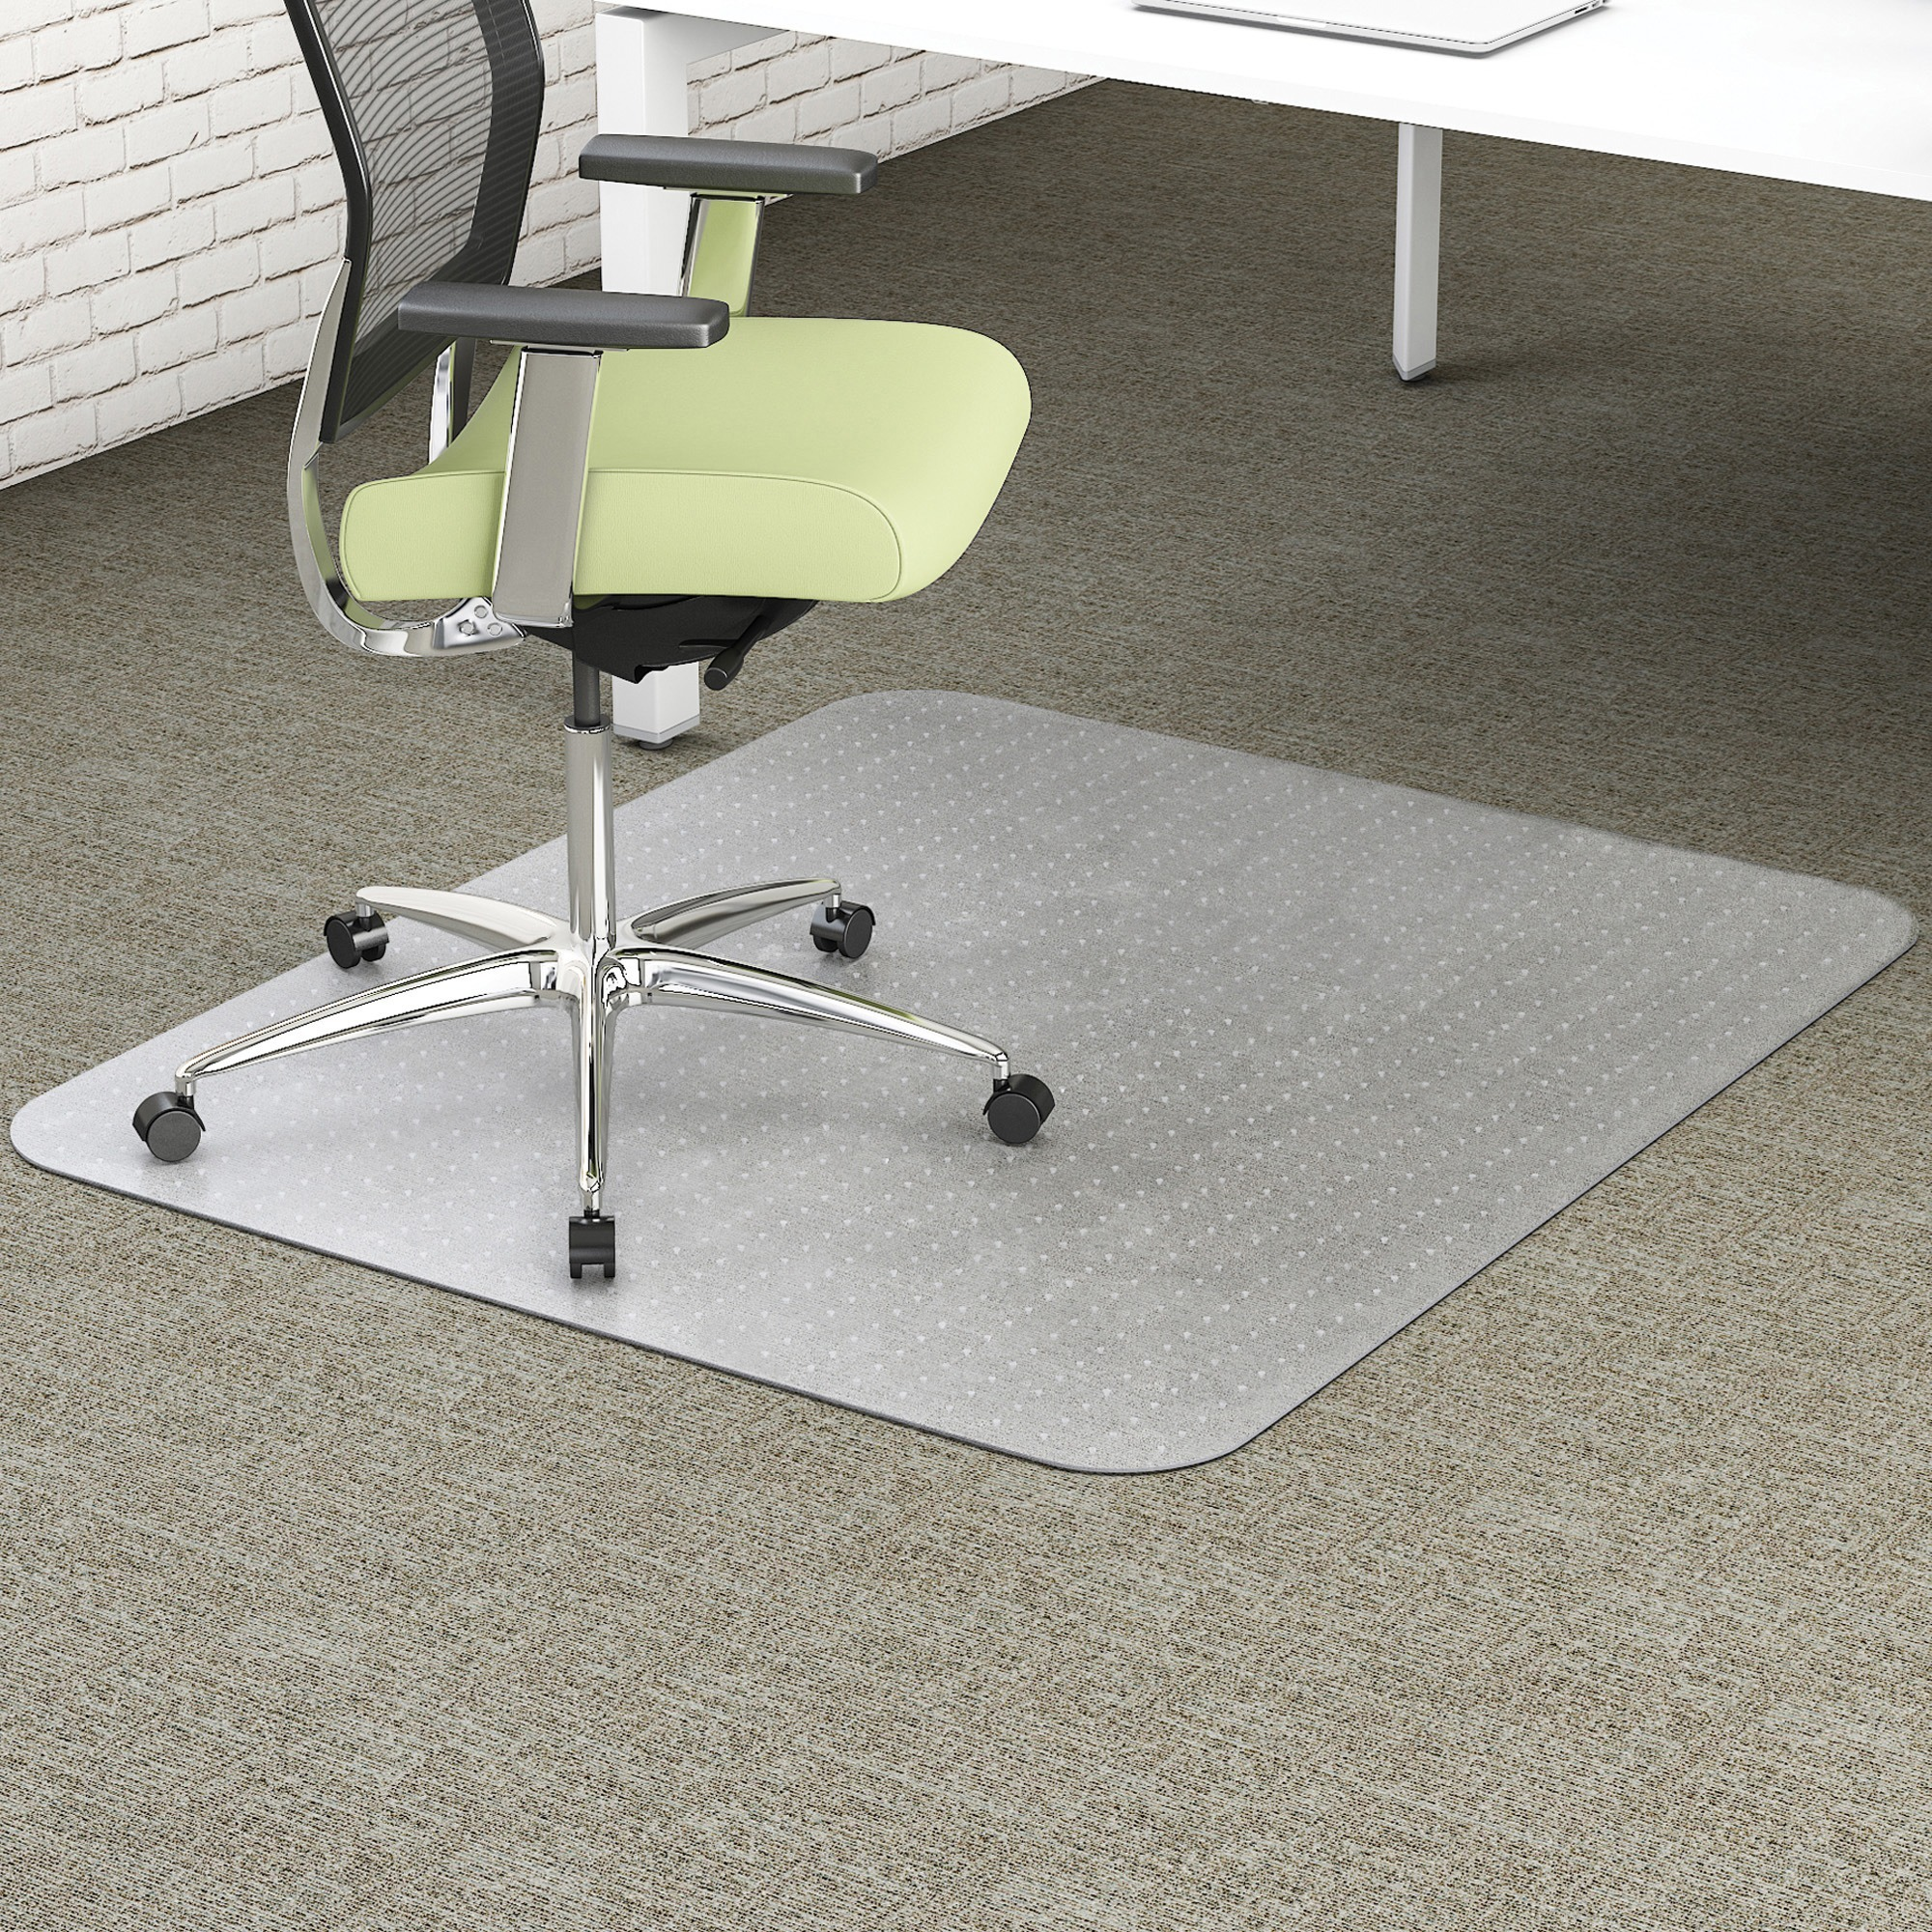 ocean stationery and office supplies furniture chairs chair